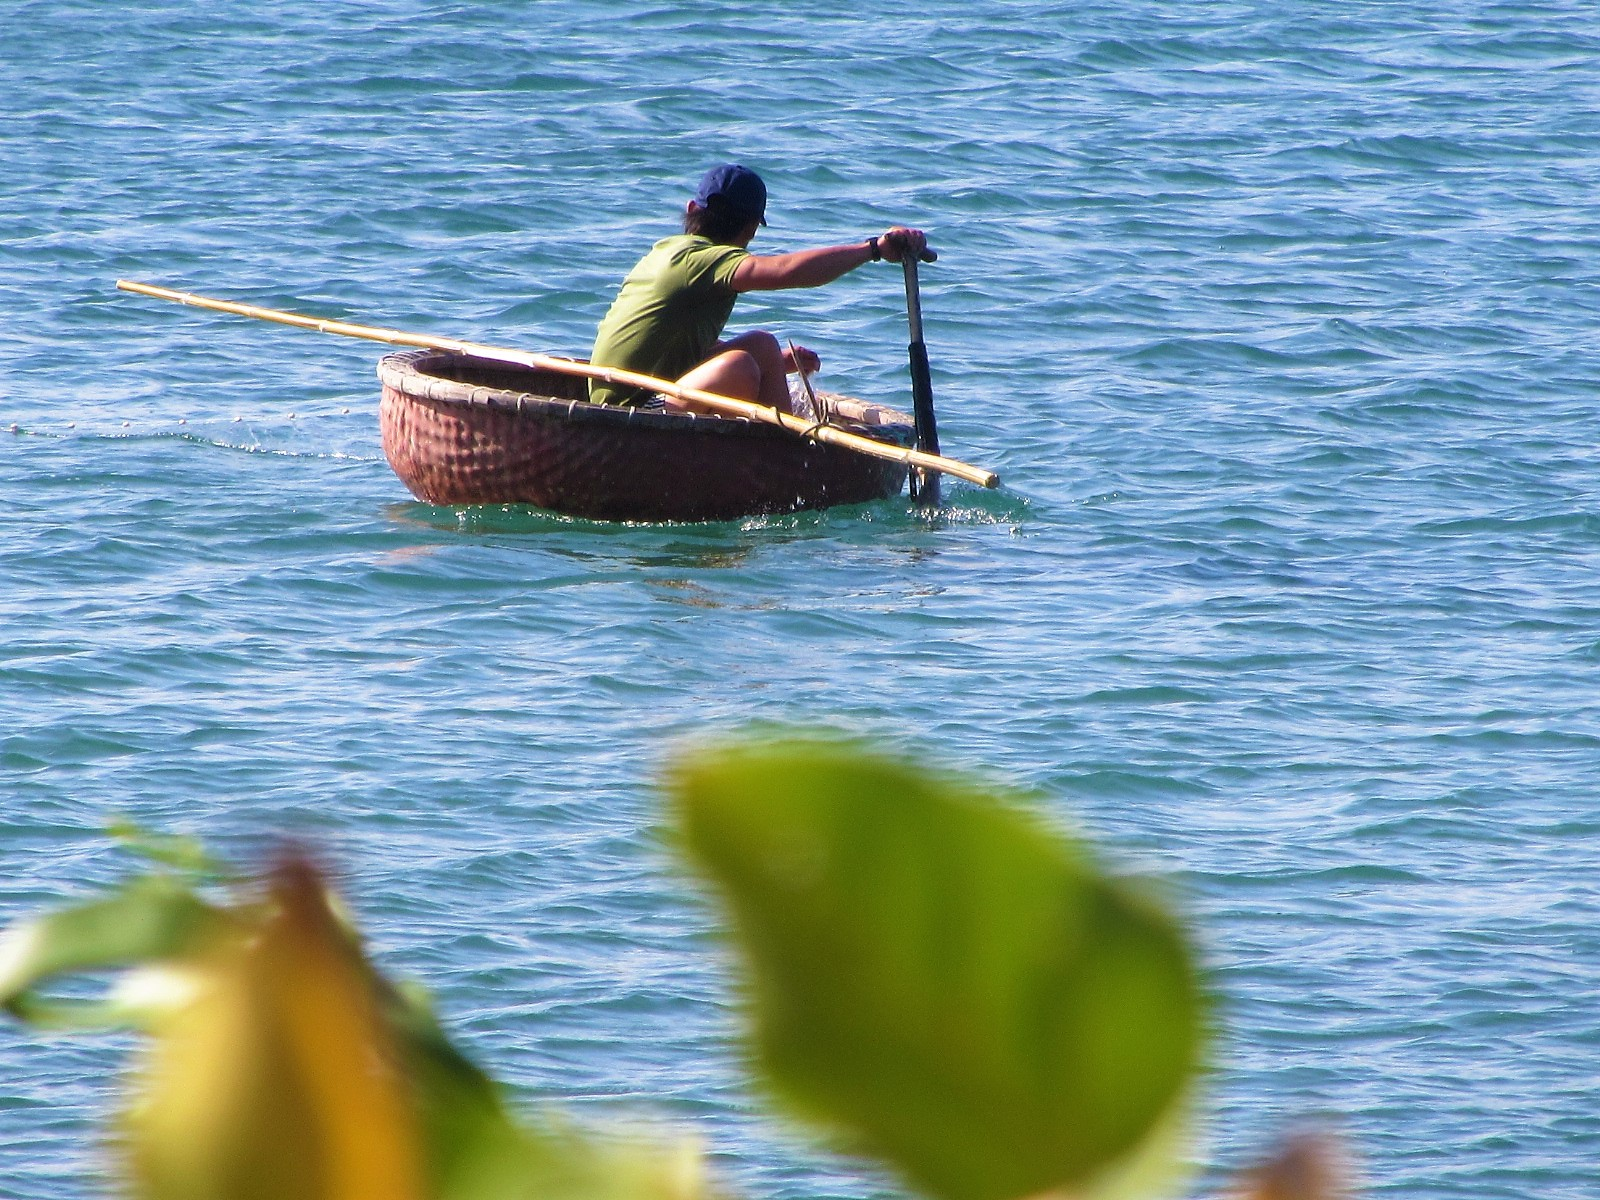 The eponymous 'coracle'